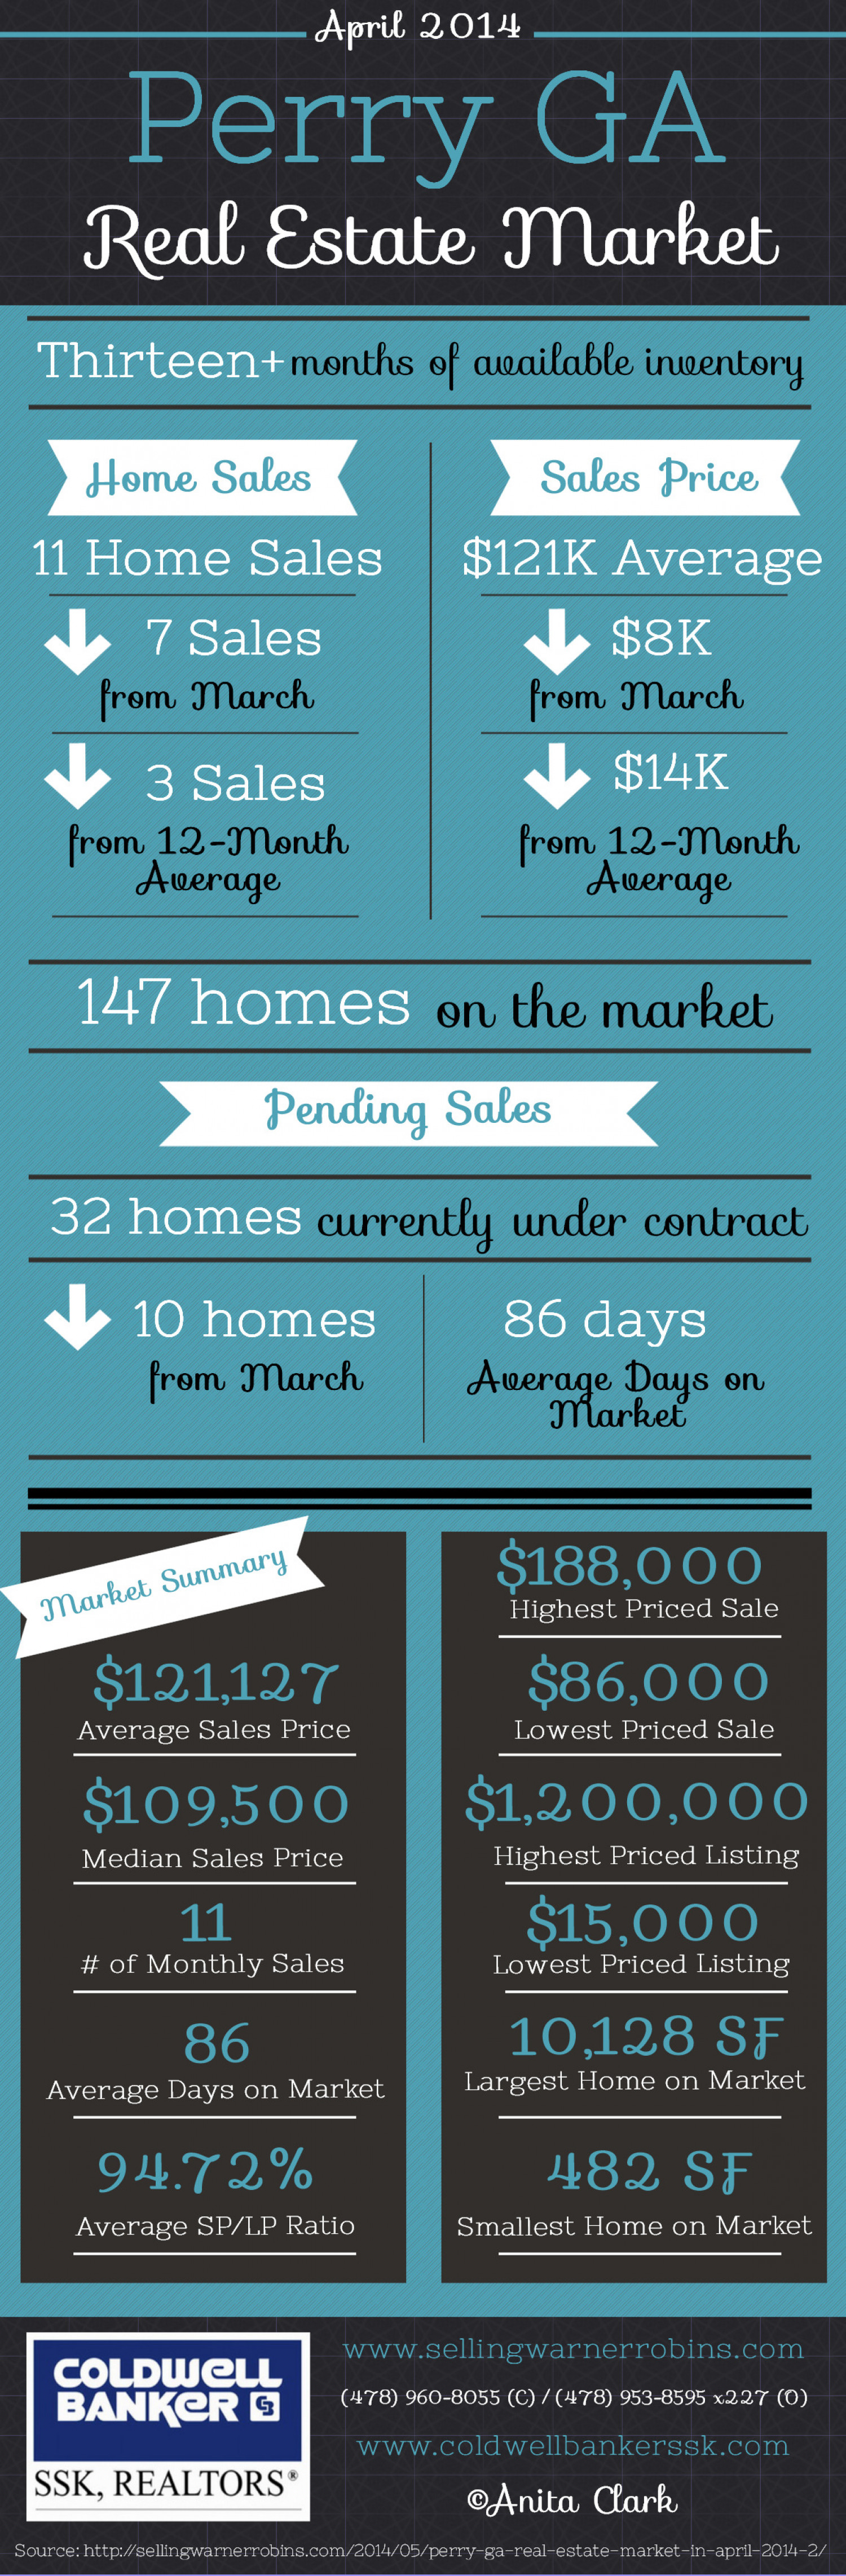 Perry GA Real Estate Market in April 2014 Infographic